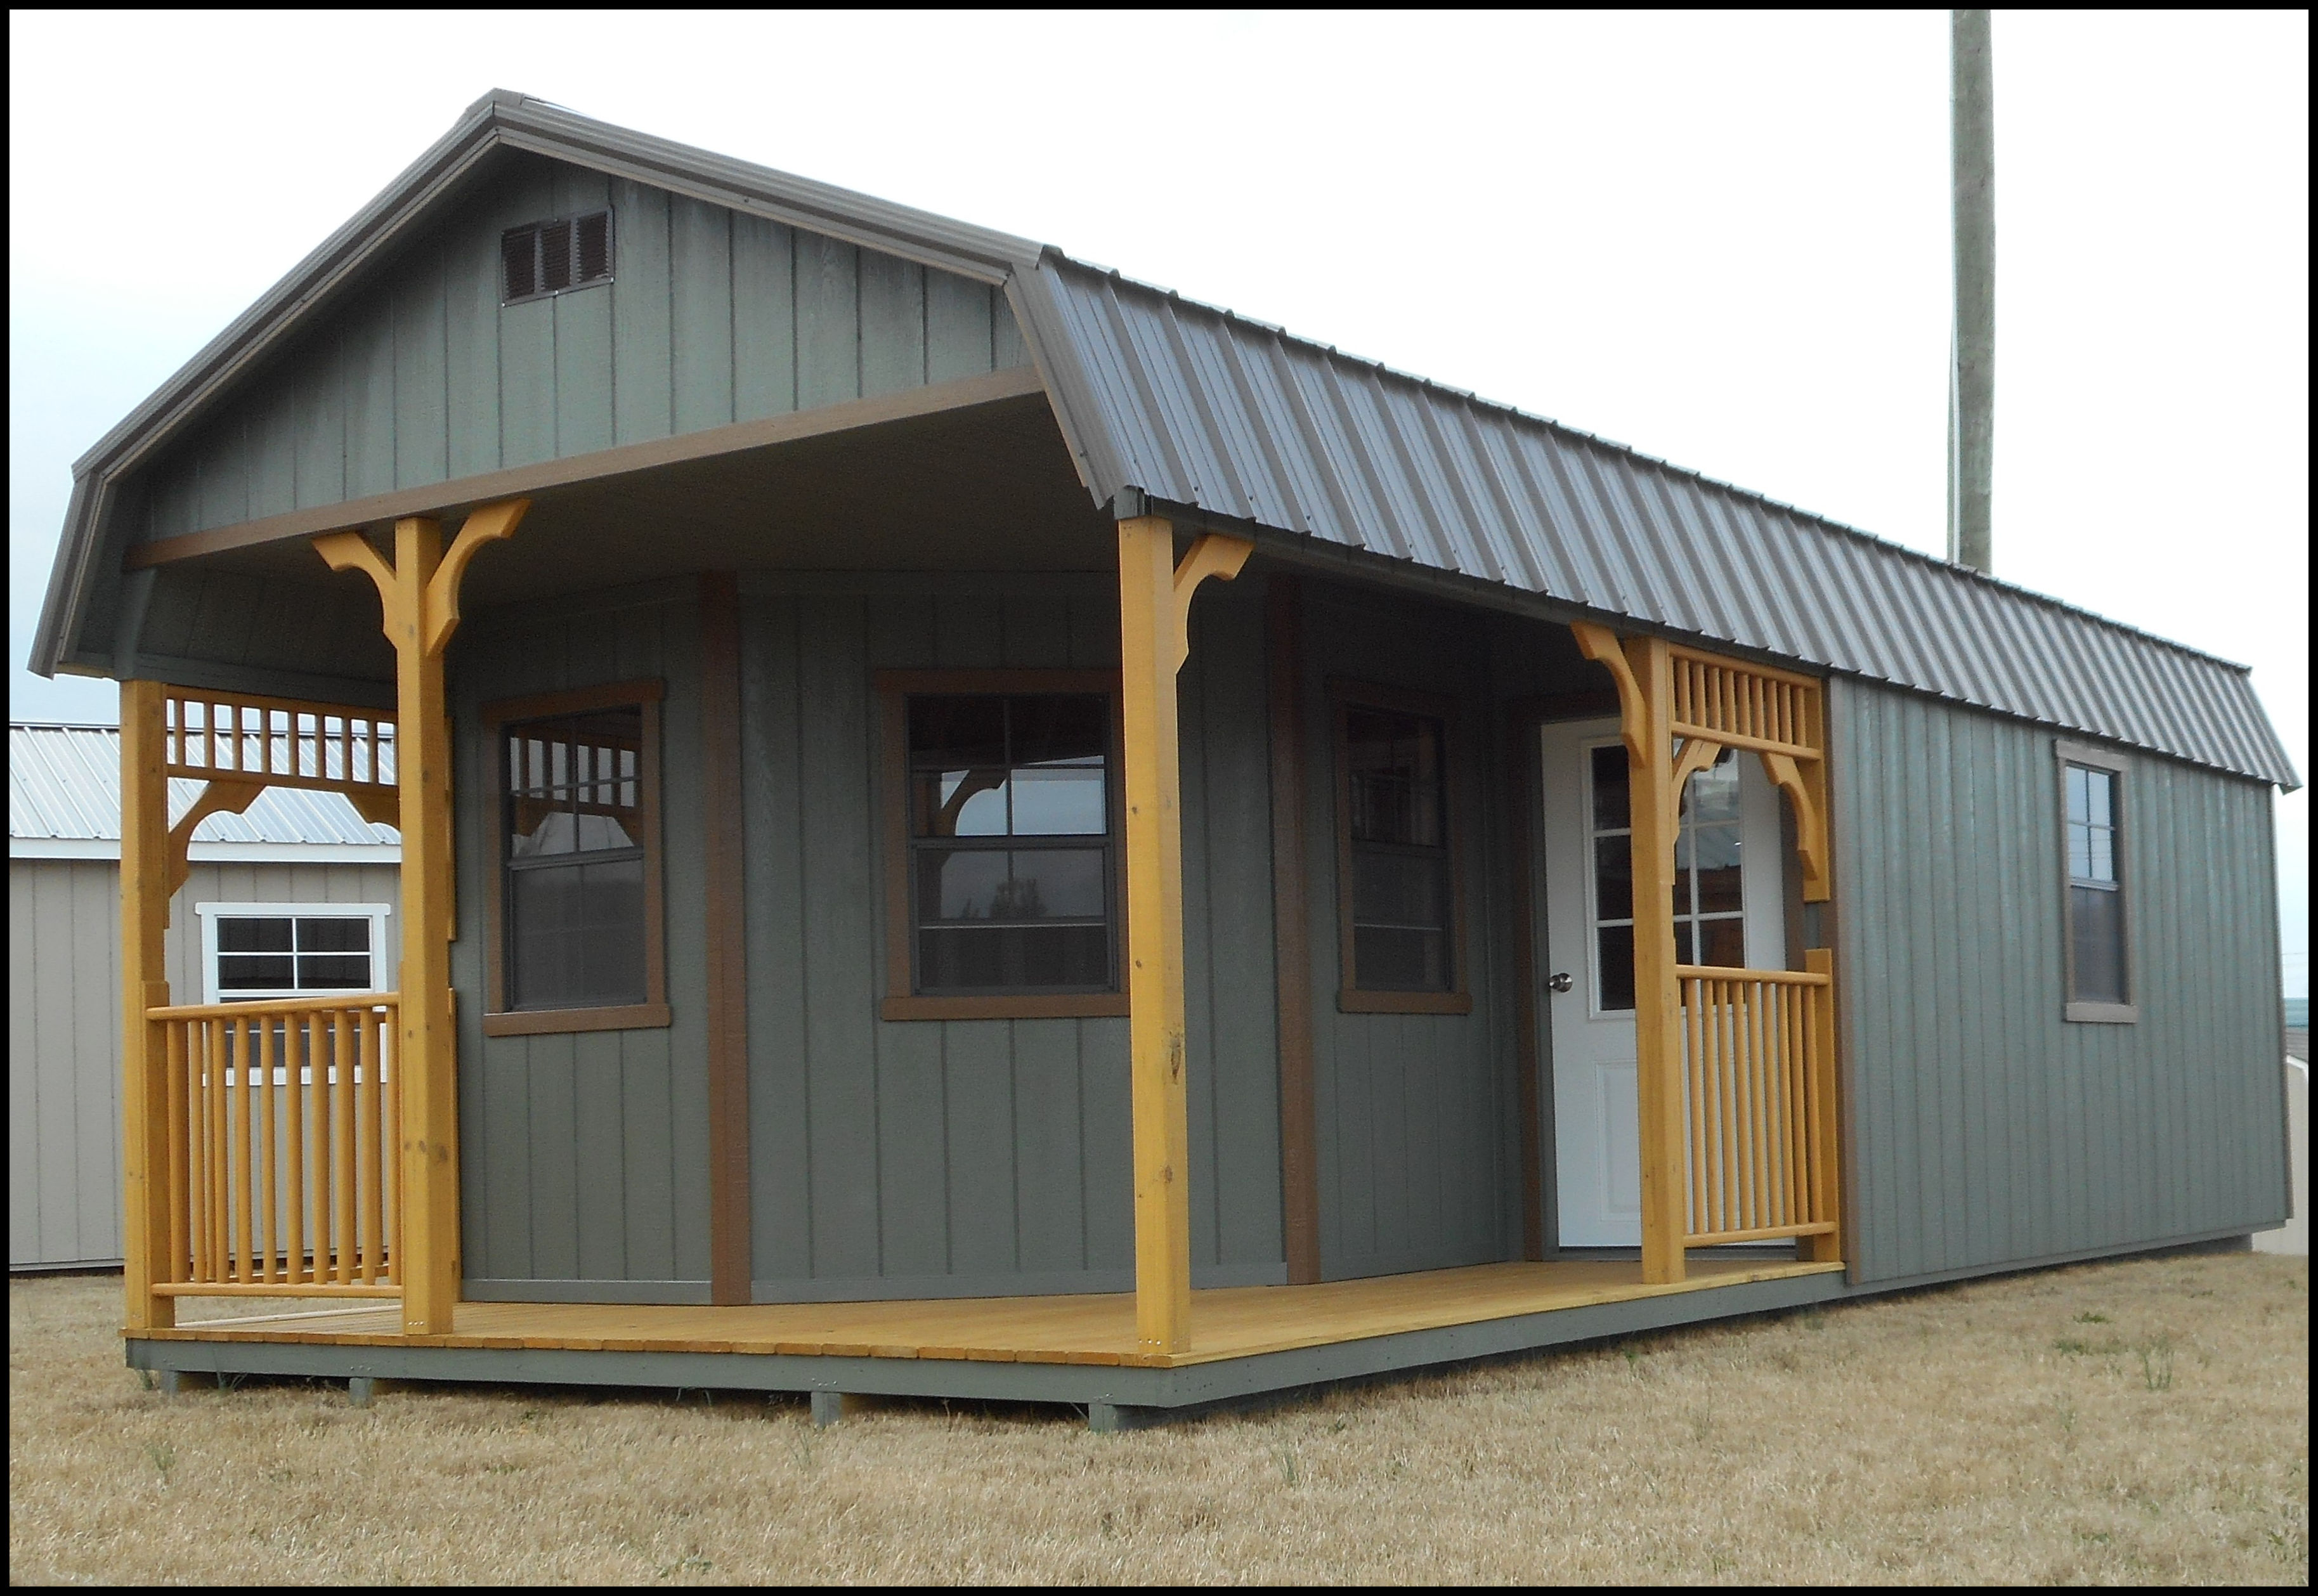 Rent to own storage buildings sheds barns lawn for Shed with loft and porch